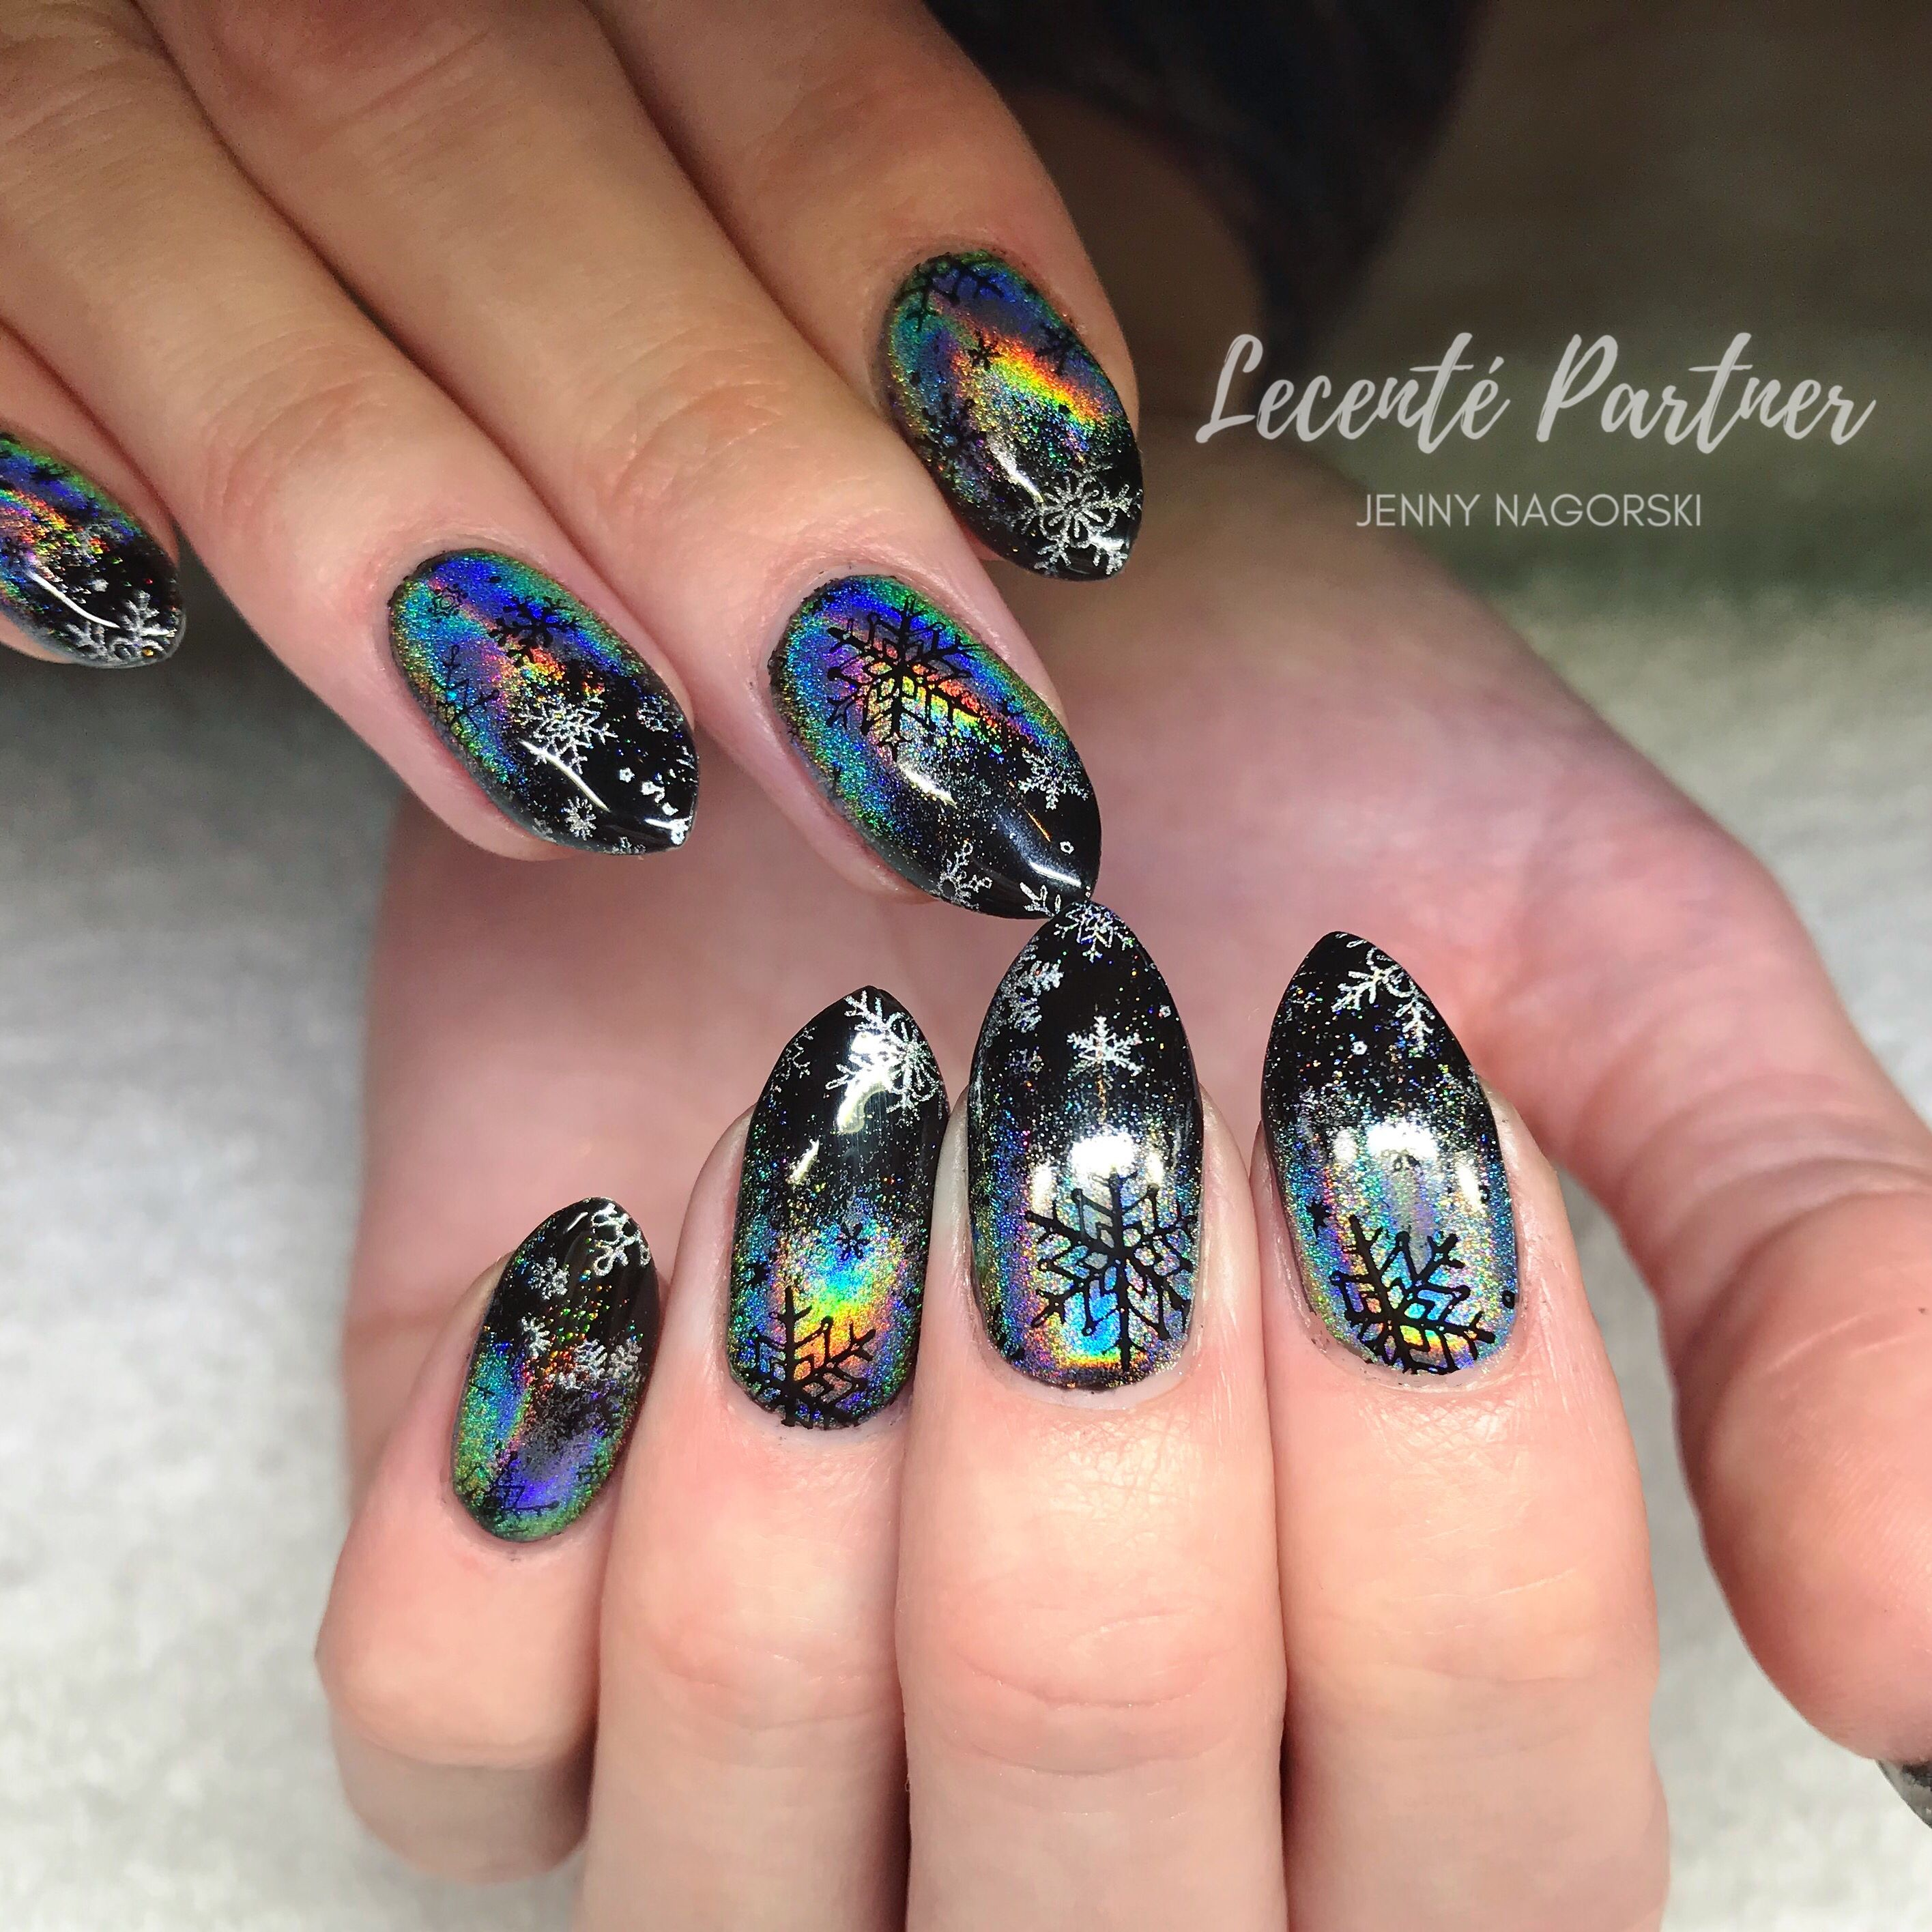 Christmas Nails Shellac: Christmas Snowflake Nails With Lecenté Rainbow Chrome And